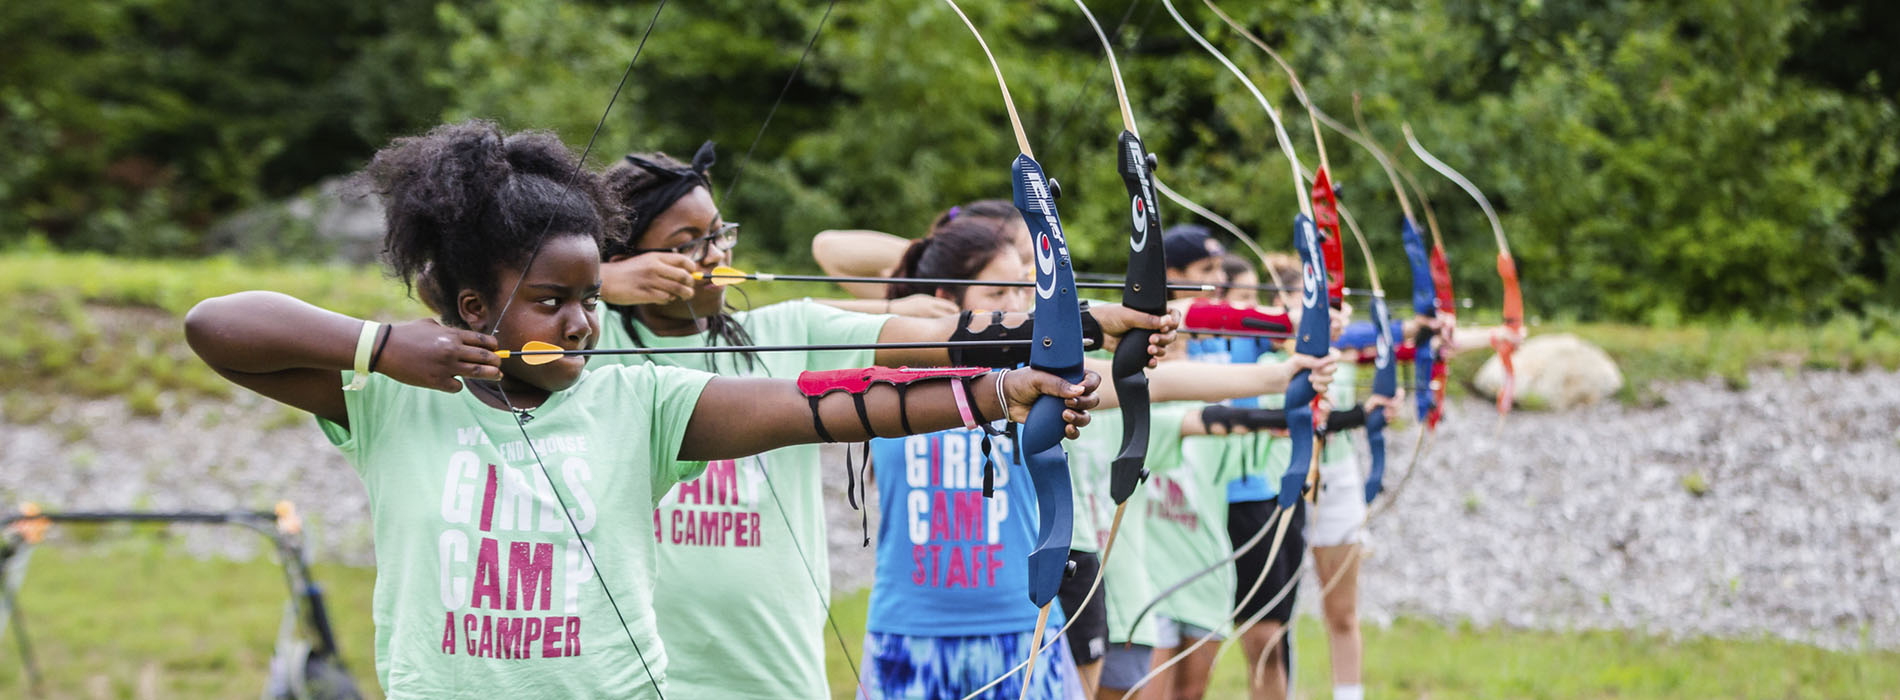 Campers at archery range